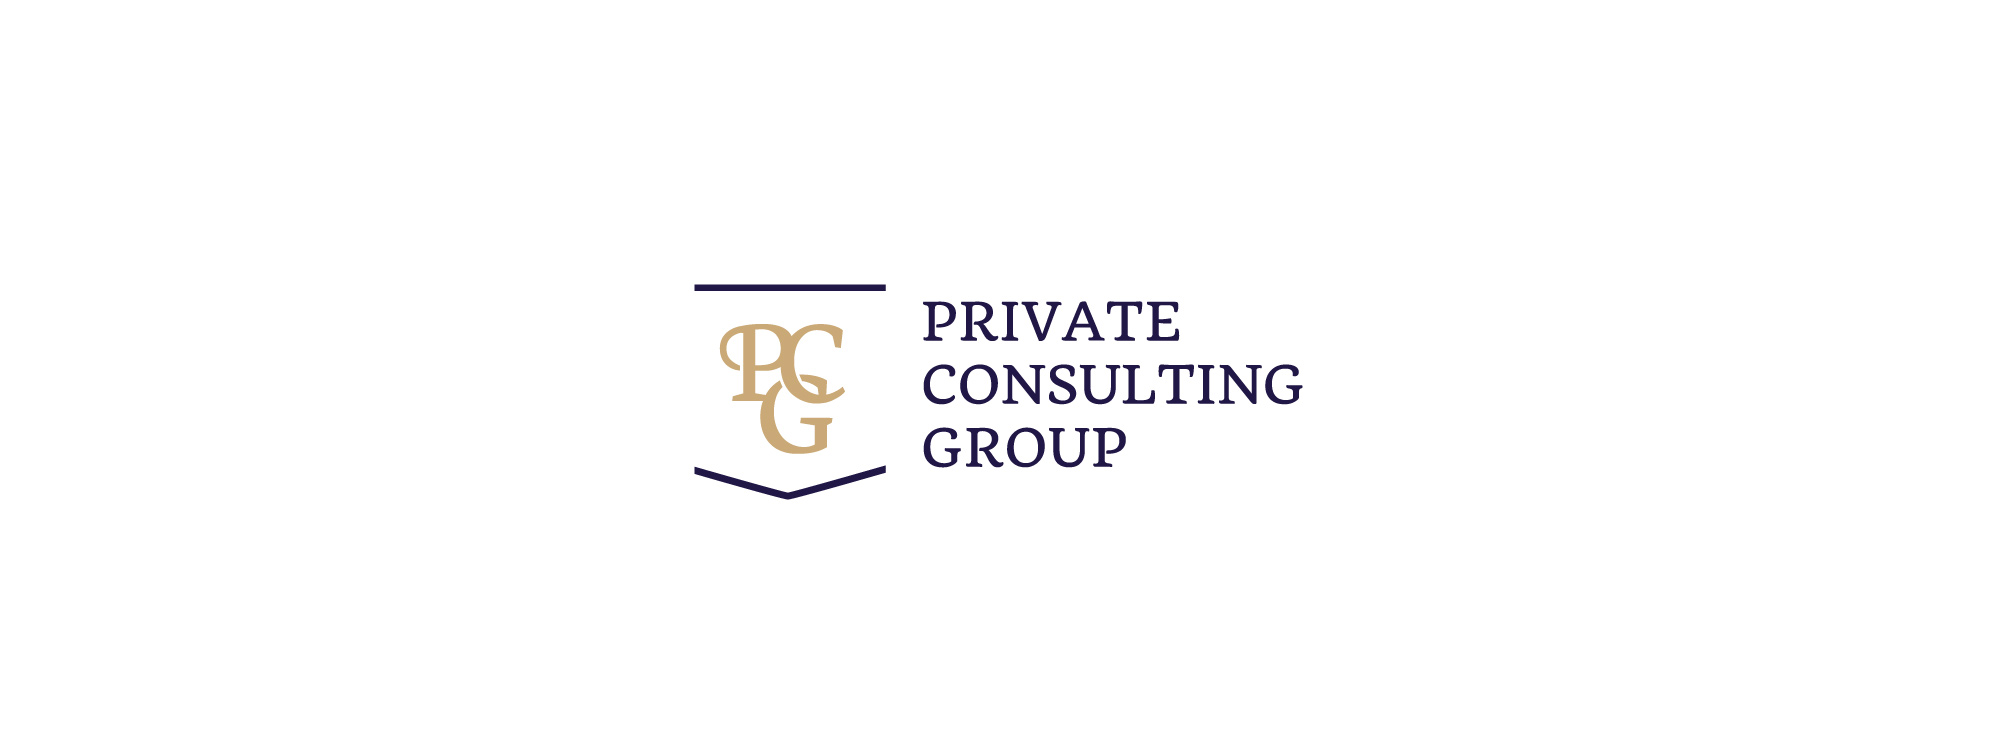 Private Consulting Group